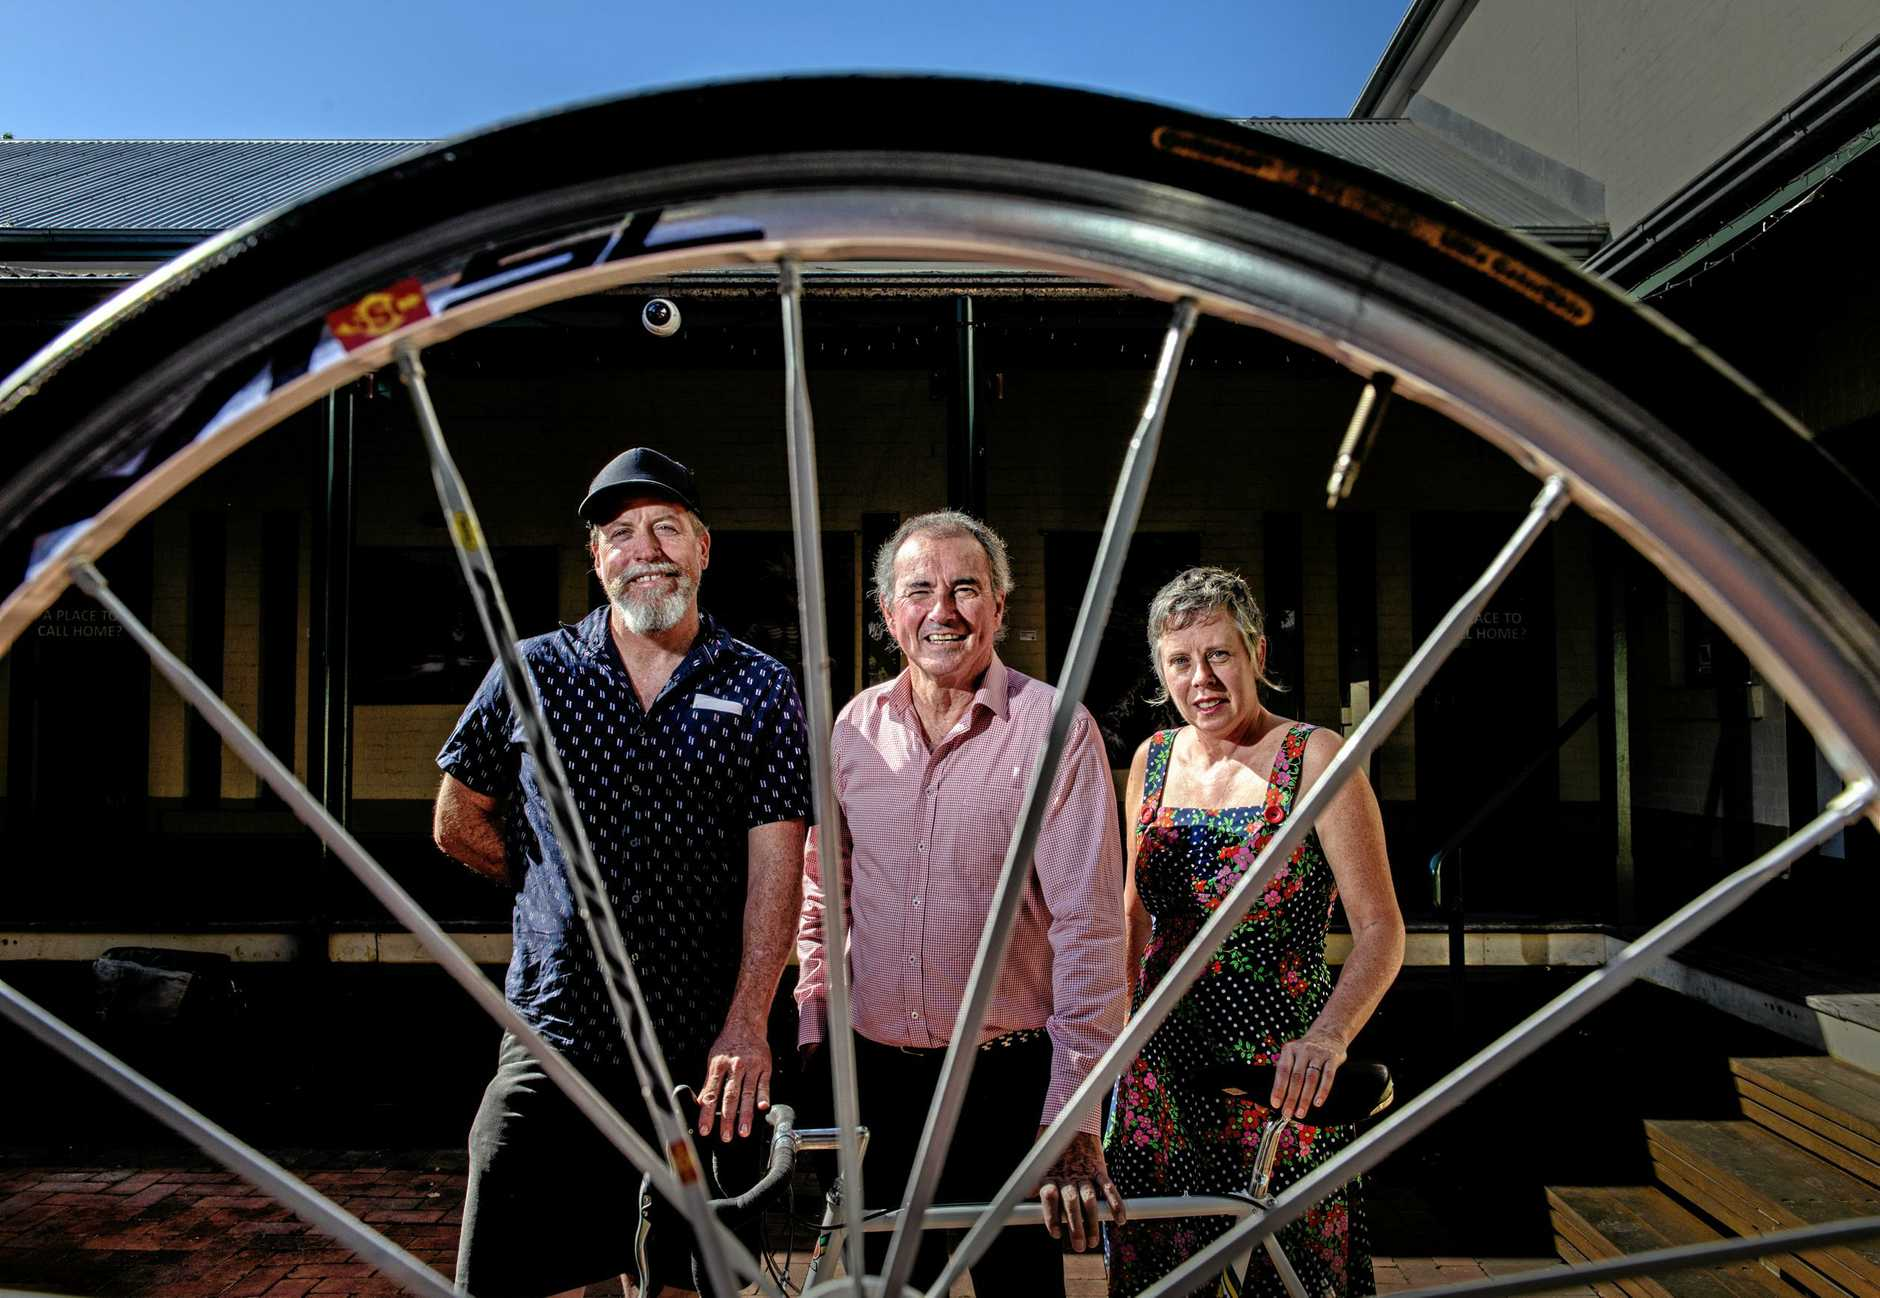 BIG WHEELS: Member for Clarence Chris Gulaptis with Danny Loyden and Sammy Lovejoy of Cast Net productions on the announcement of funding for the Bike Town project in conjunction with Grafton Regional Gallery.